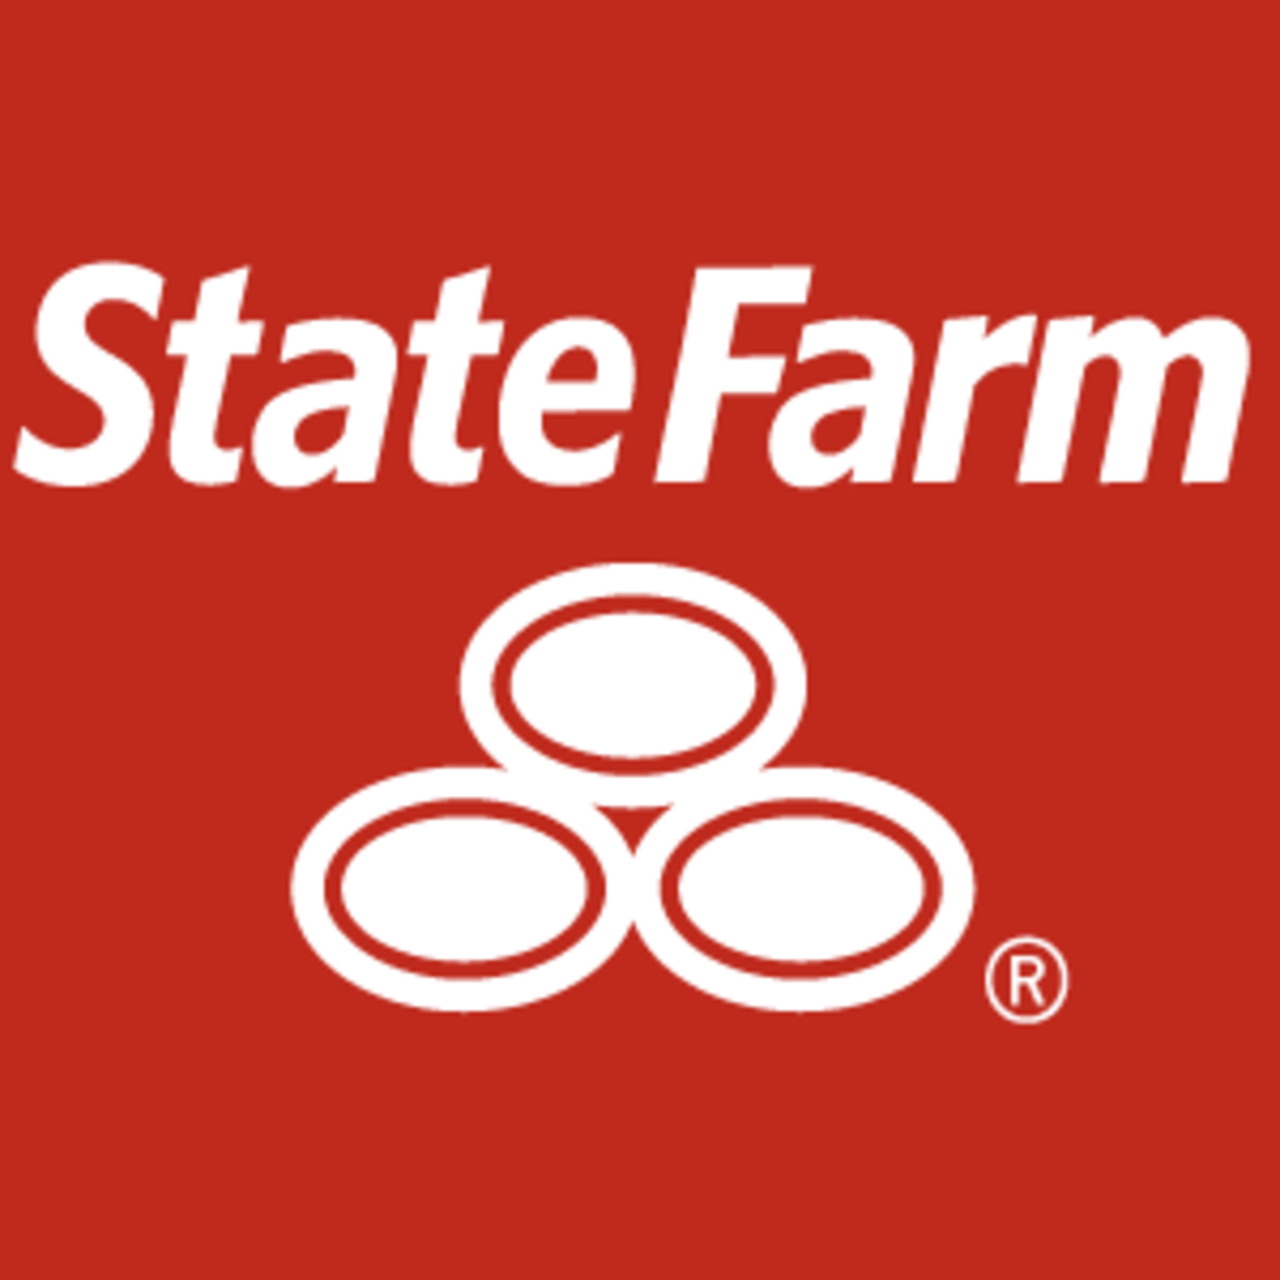 State Farm Insurance - Doris Stipech - Insurance - Insurance Brokers in Arvada CO